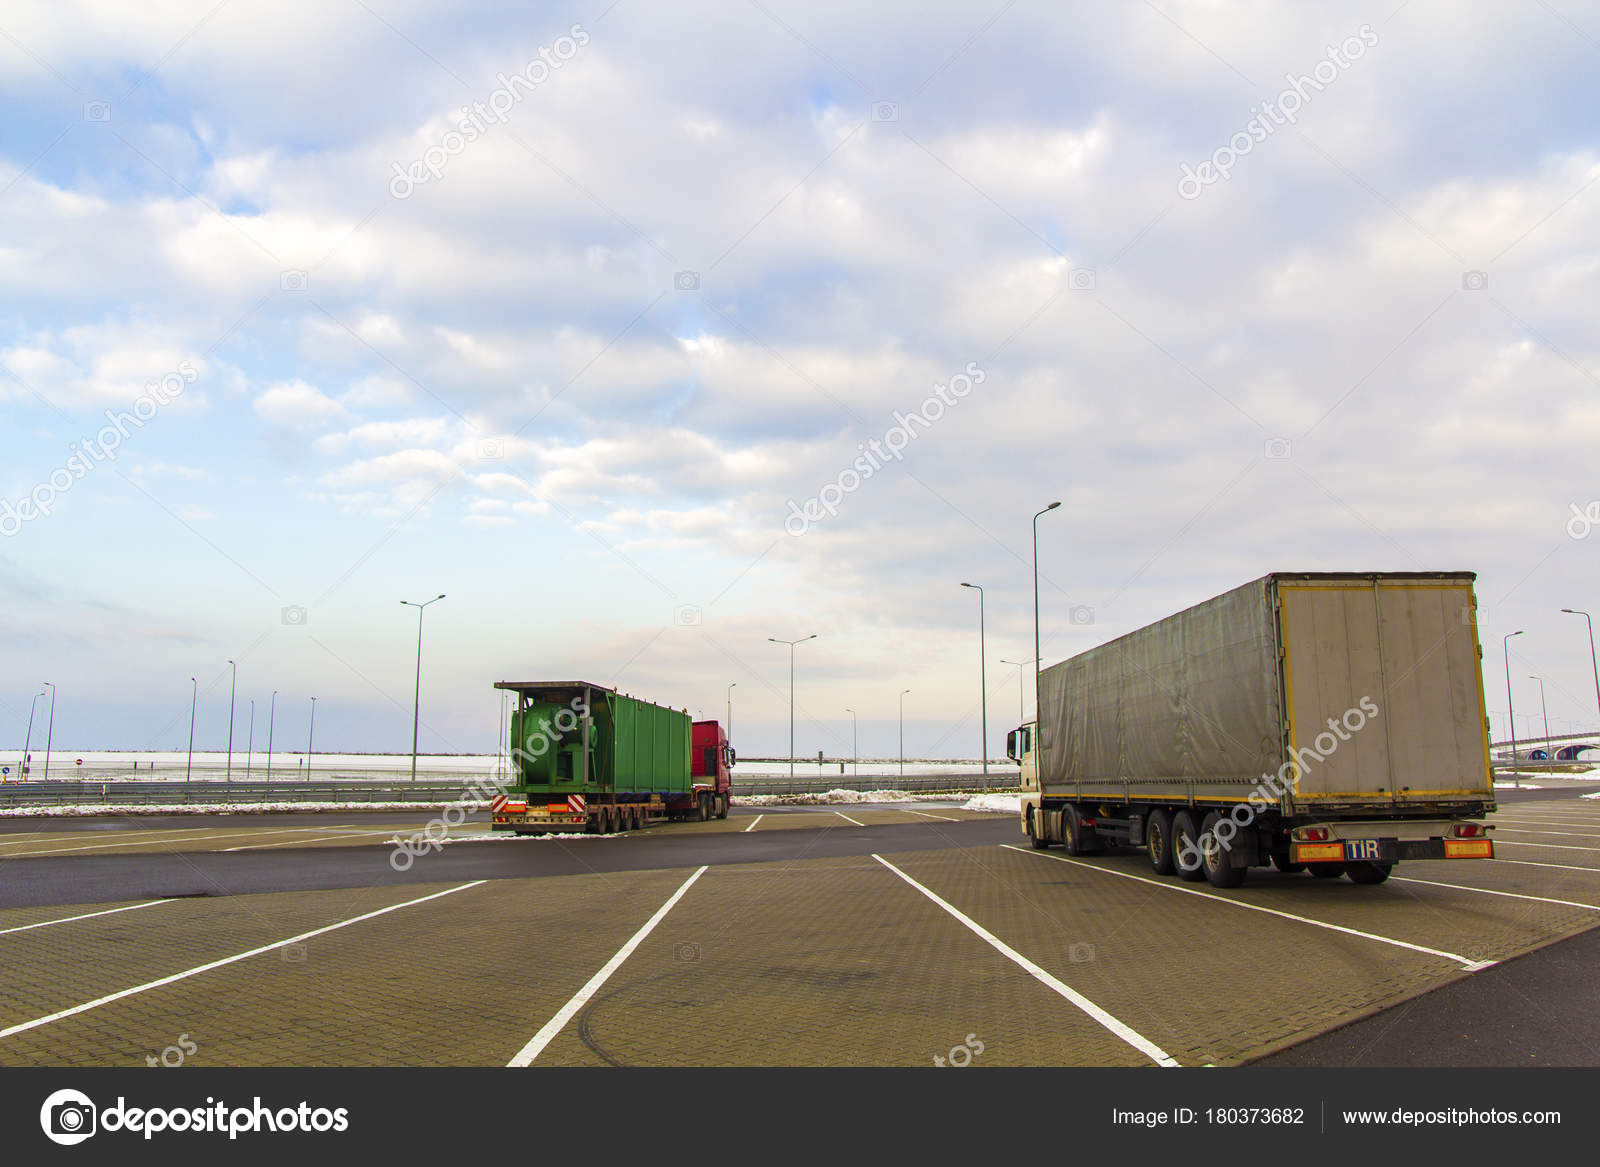 Big cargo truck parked on a parking lot — Stock Photo © bilanol i ua